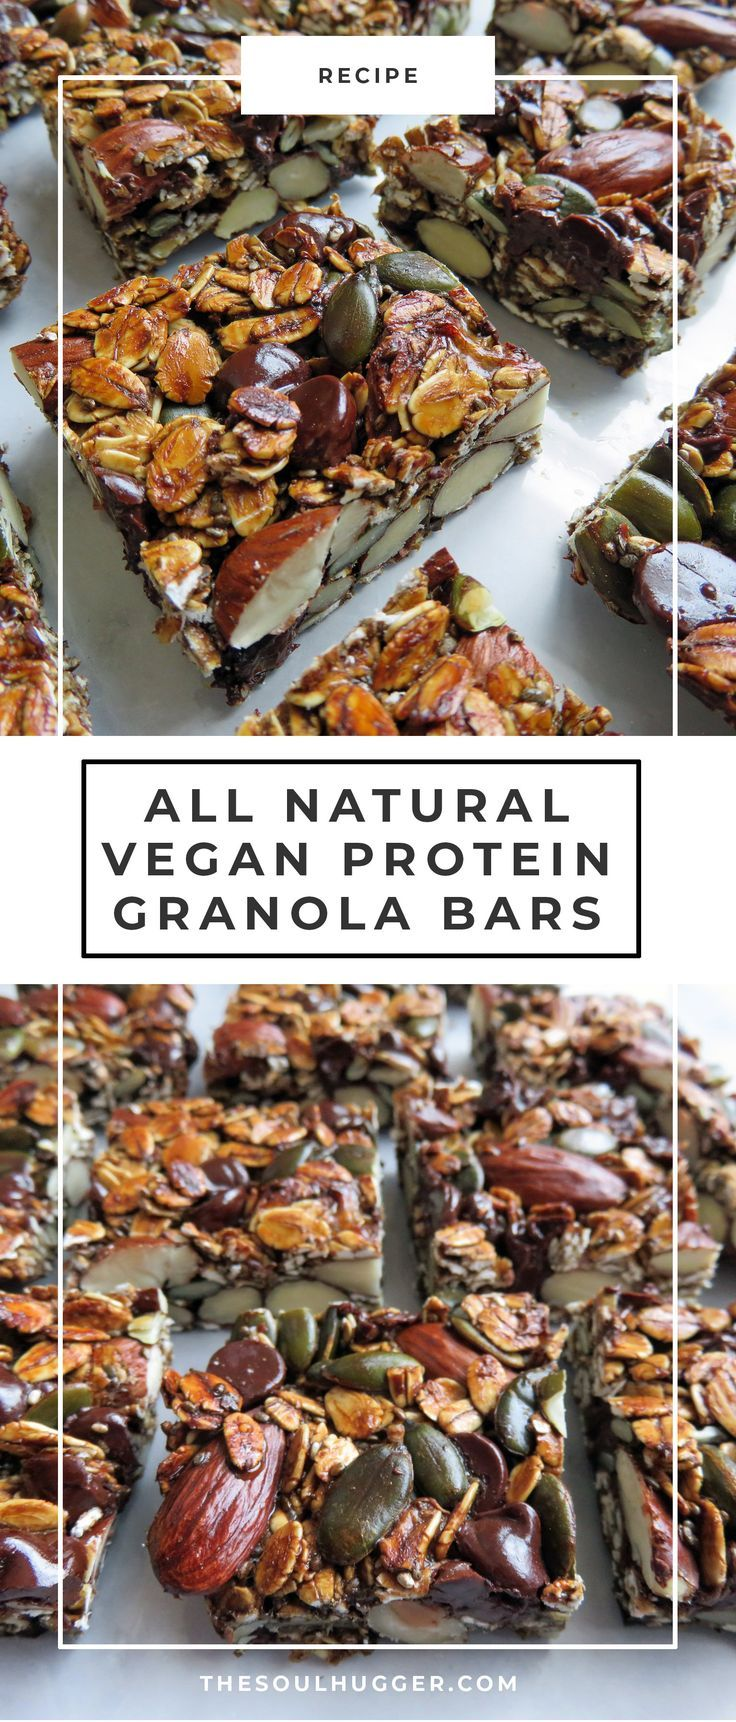 All natural protein granola bars recipe (vegan) | vegan recipe | healthy snack | healthy recipe | plant-based nutrition | vegan diet | plant-based recipe | easy recipe | healthy eating | vegetarian diet | vegetarian recipe | #vegan #granolabar